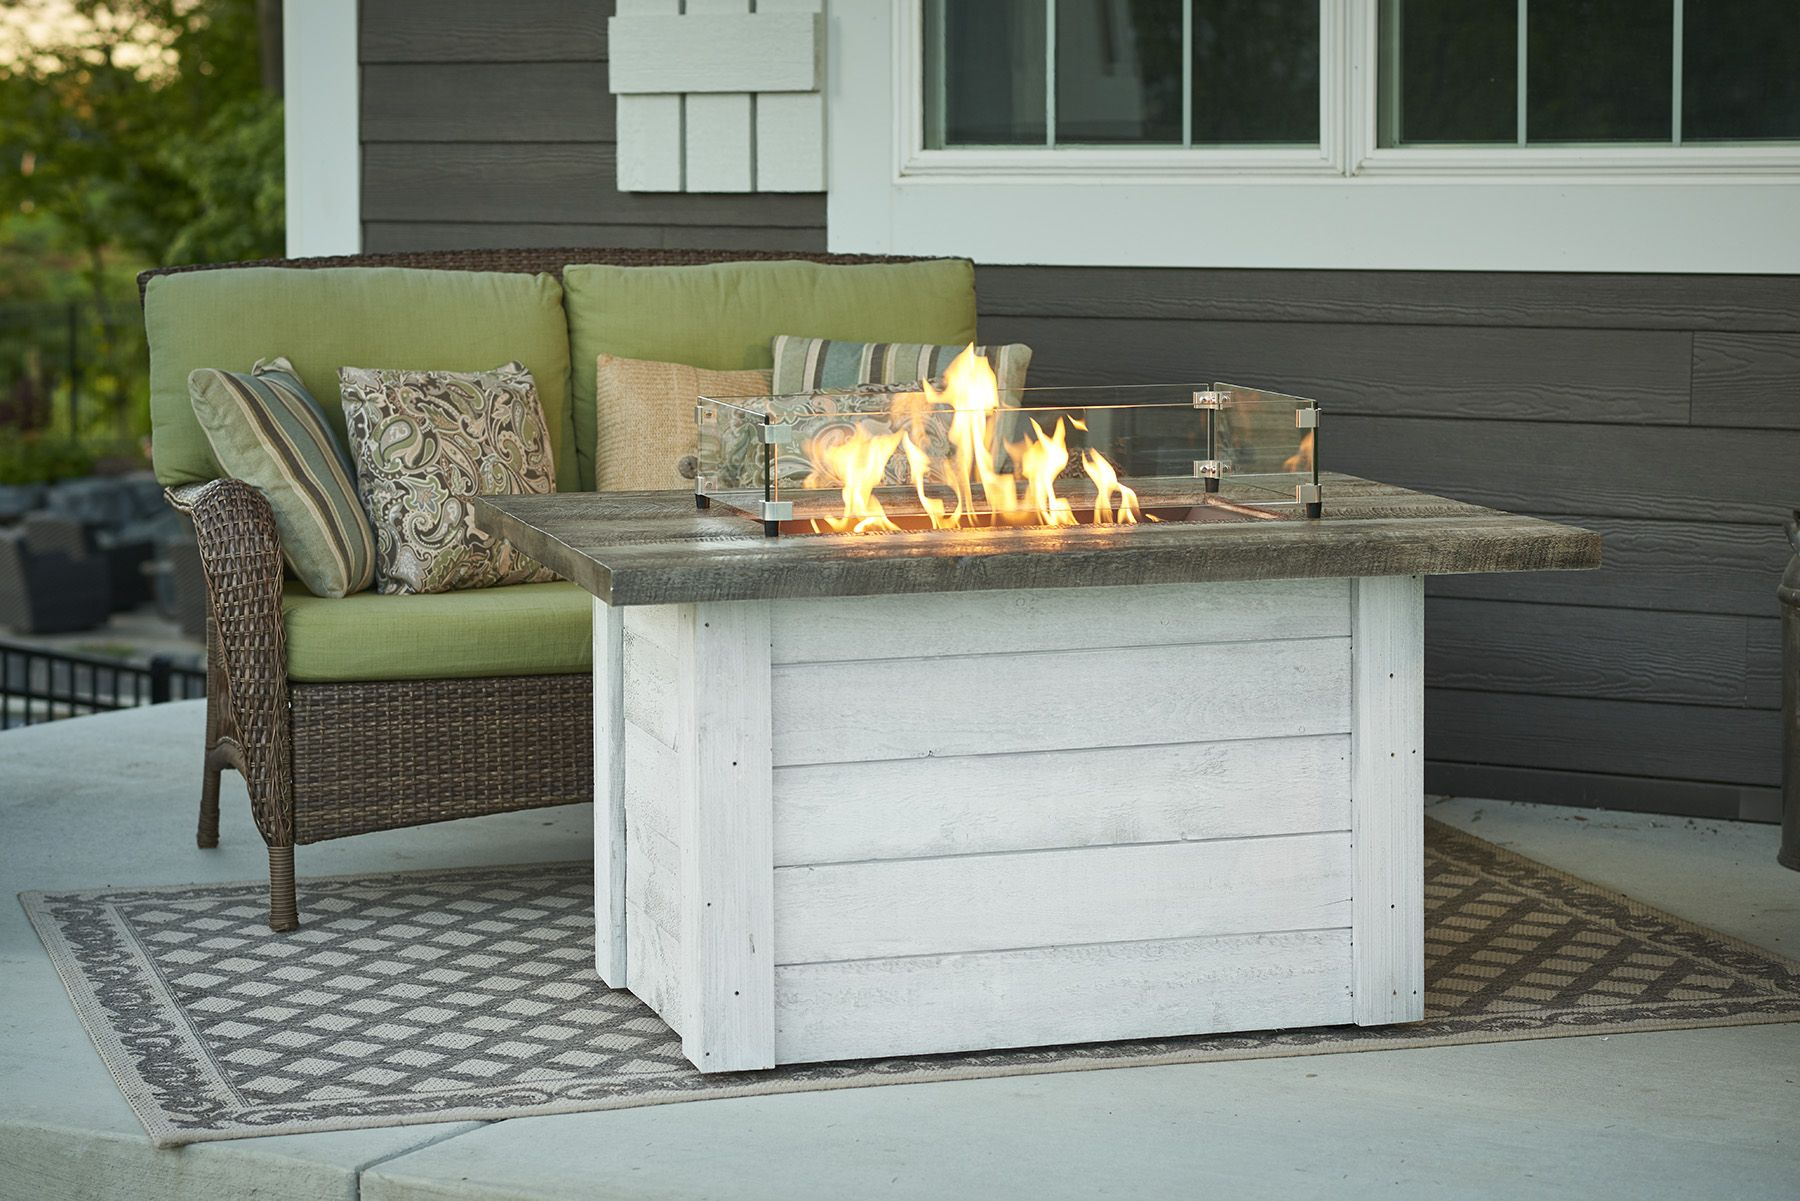 Rustic Patio Gorgeous Fire Pit Table That Brings The Modern To The Farmhouse Fire Pit Table Gas Fire Pit Table Rectangular Gas Fire Pit